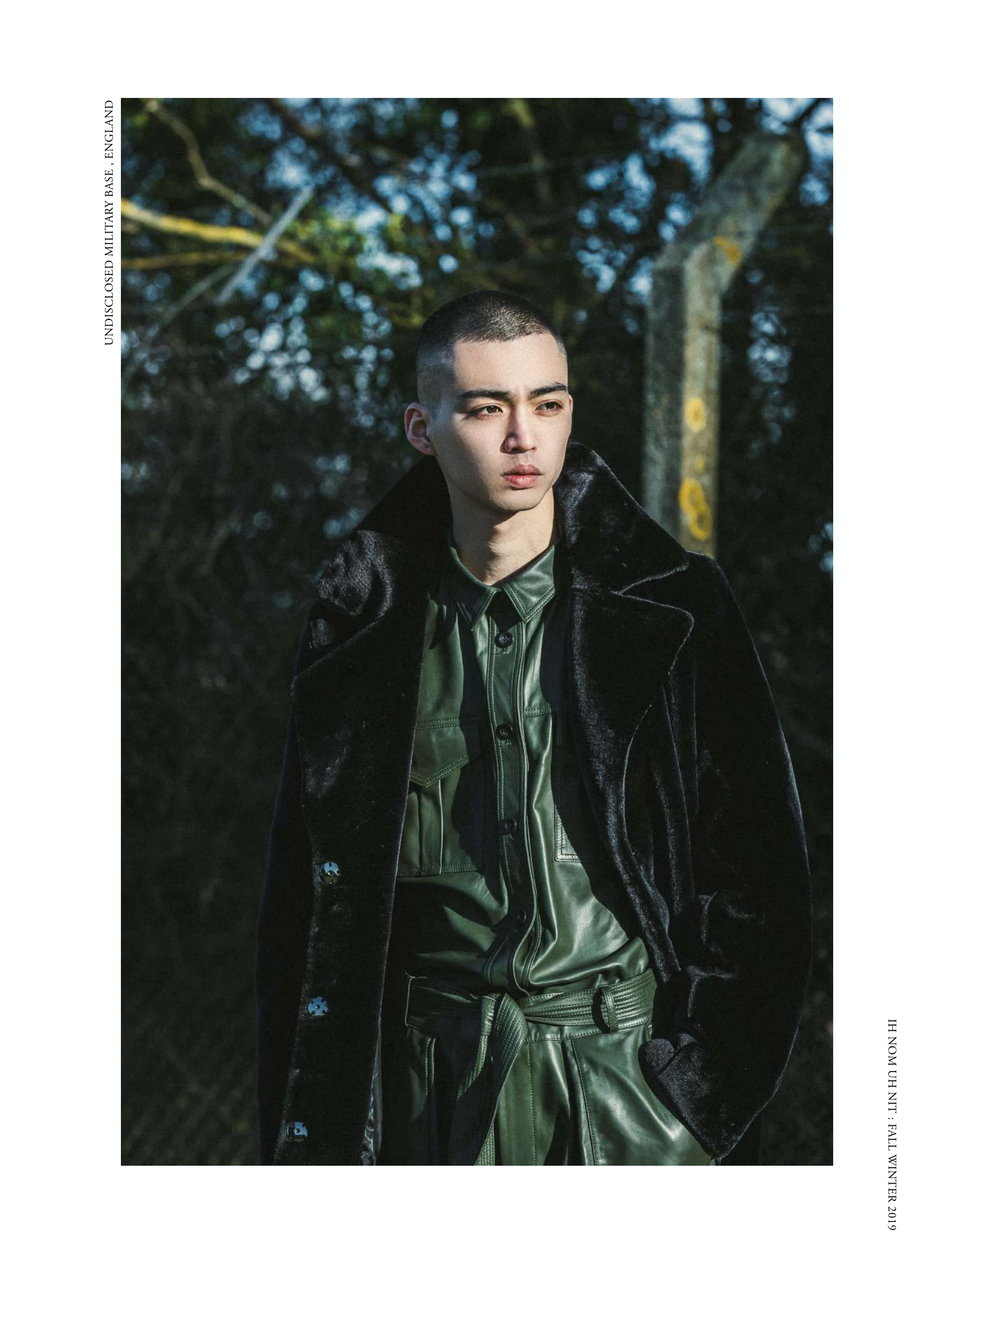 FW19 MAN LOOK BOOK -24.jpg